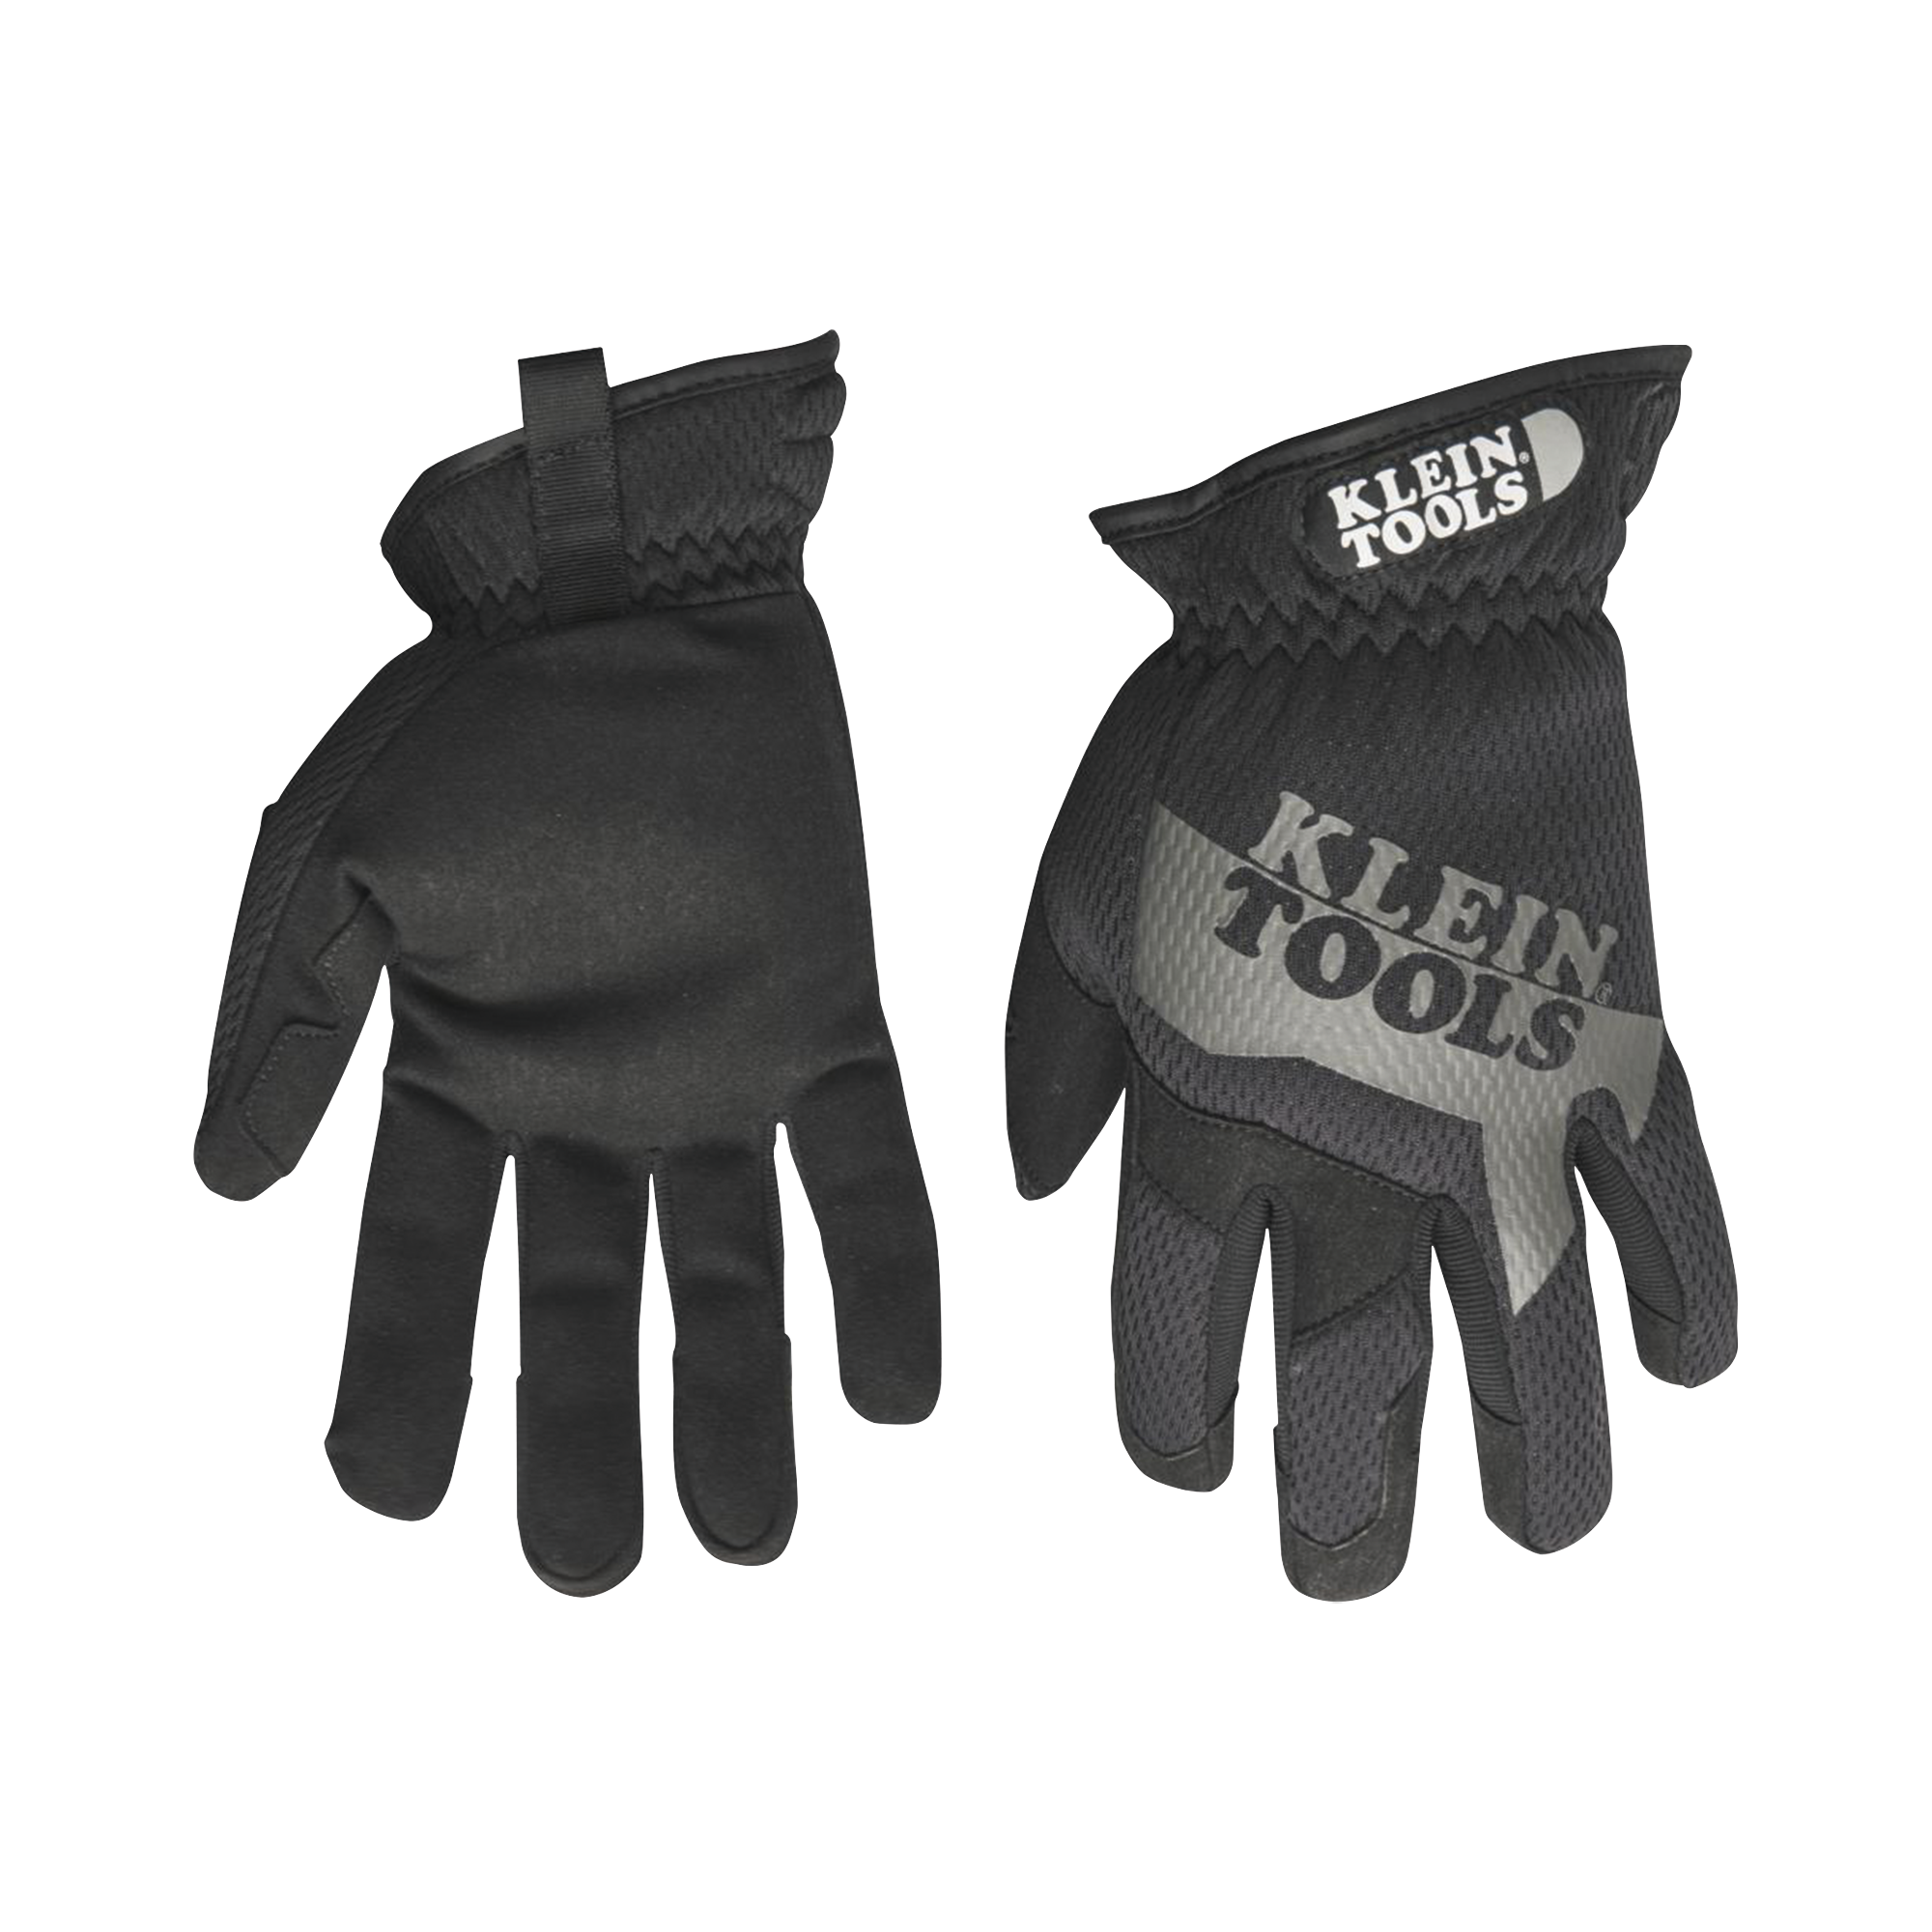 Guantes para Uso General Journeyman - Grandes.